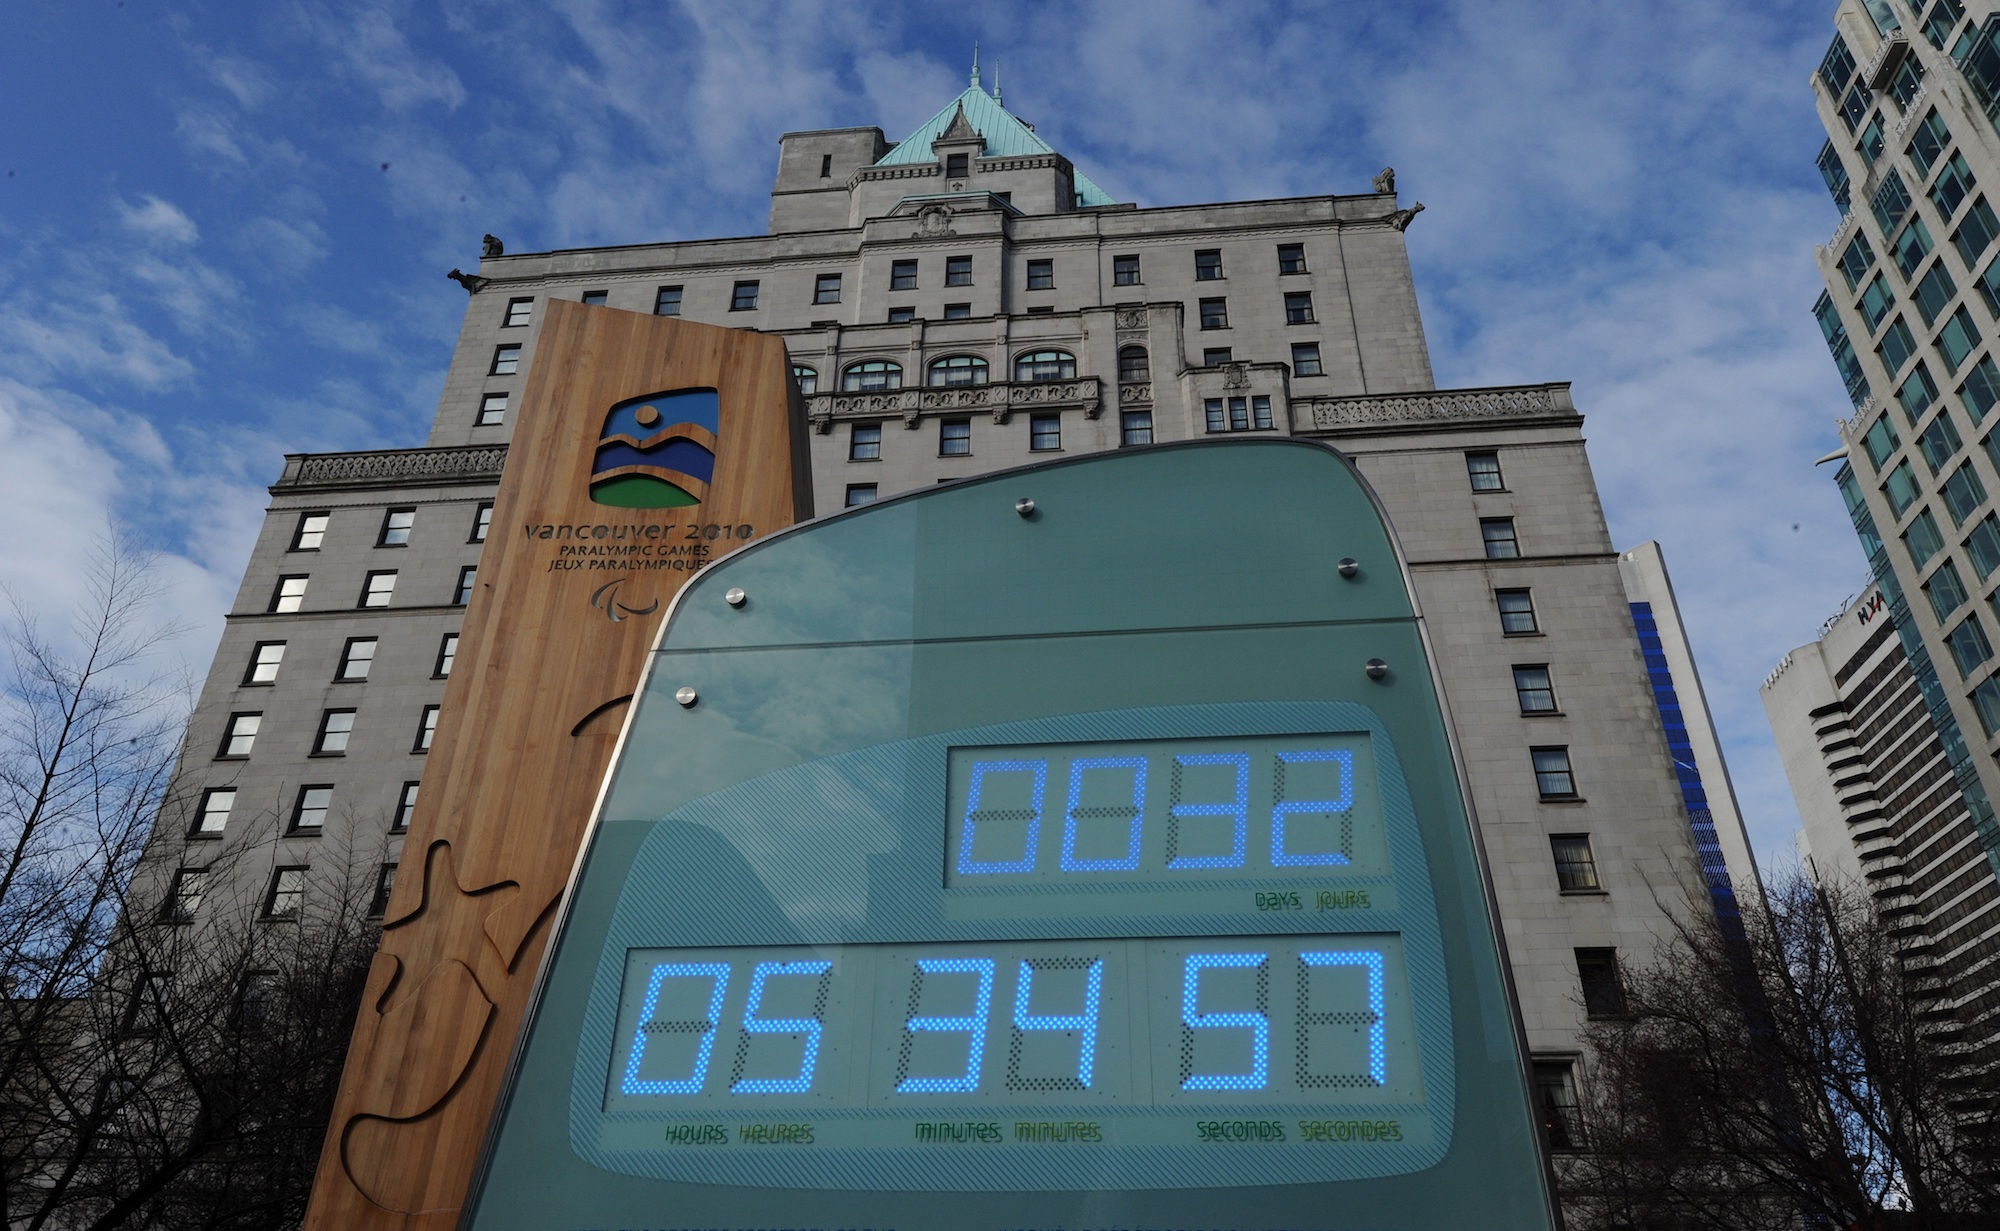 a large green sign with a countdown clock in days, hours, and minutes on a city street